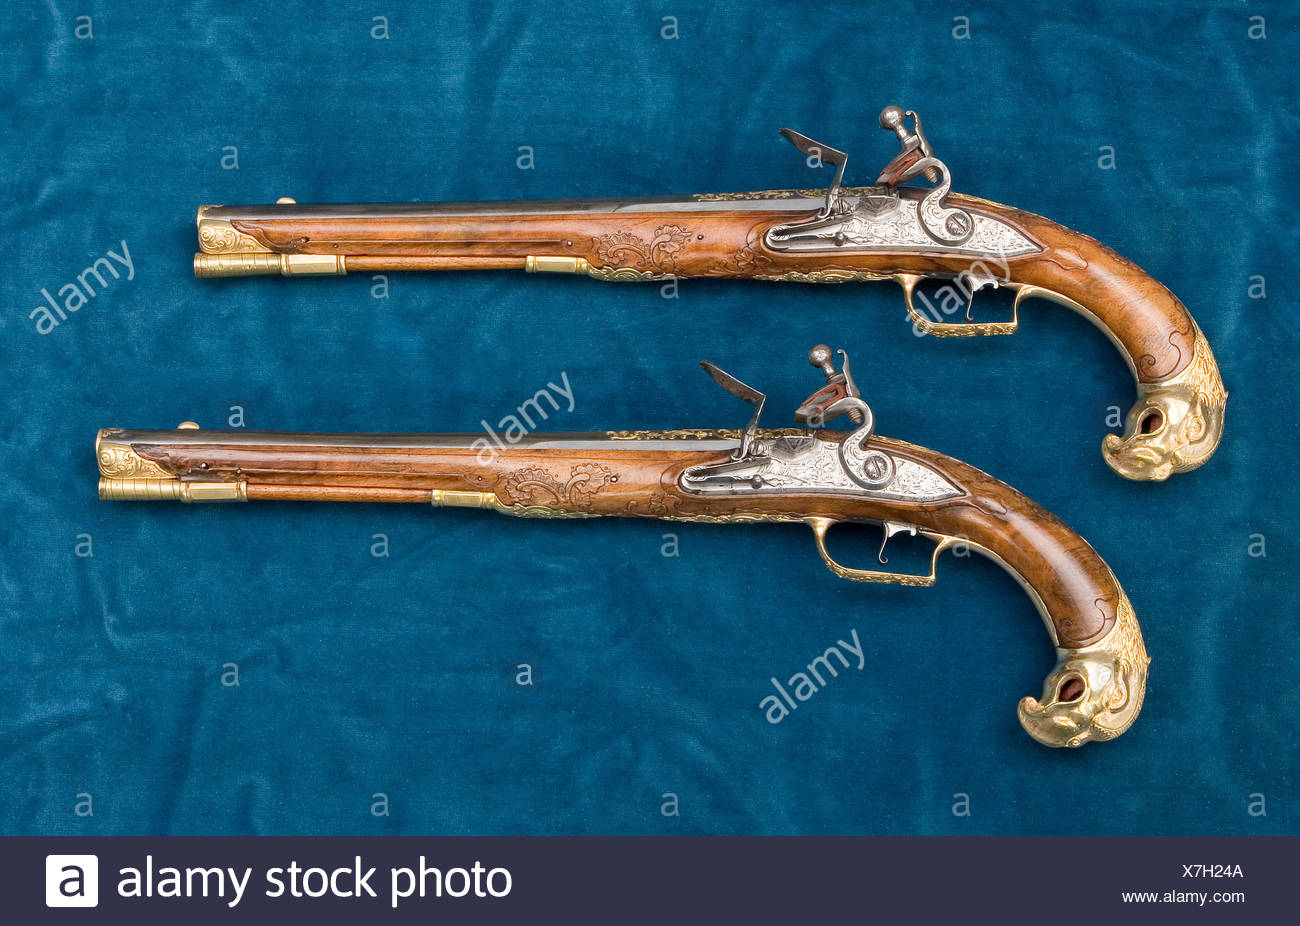 Flintlock Pistols Stock Photos & Flintlock Pistols Stock Images - Alamy